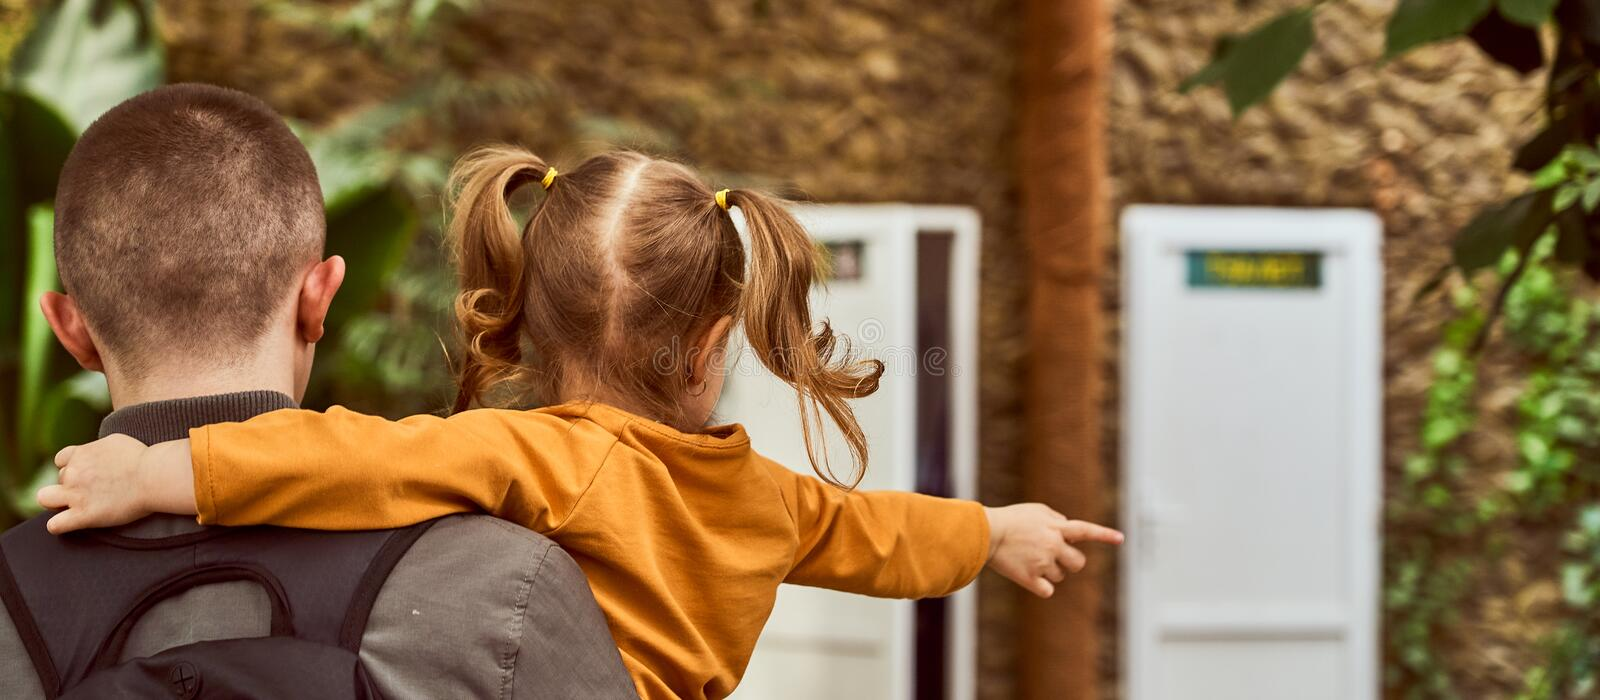 a man holding a child in his arms, back in the frame, go. royalty free stock image